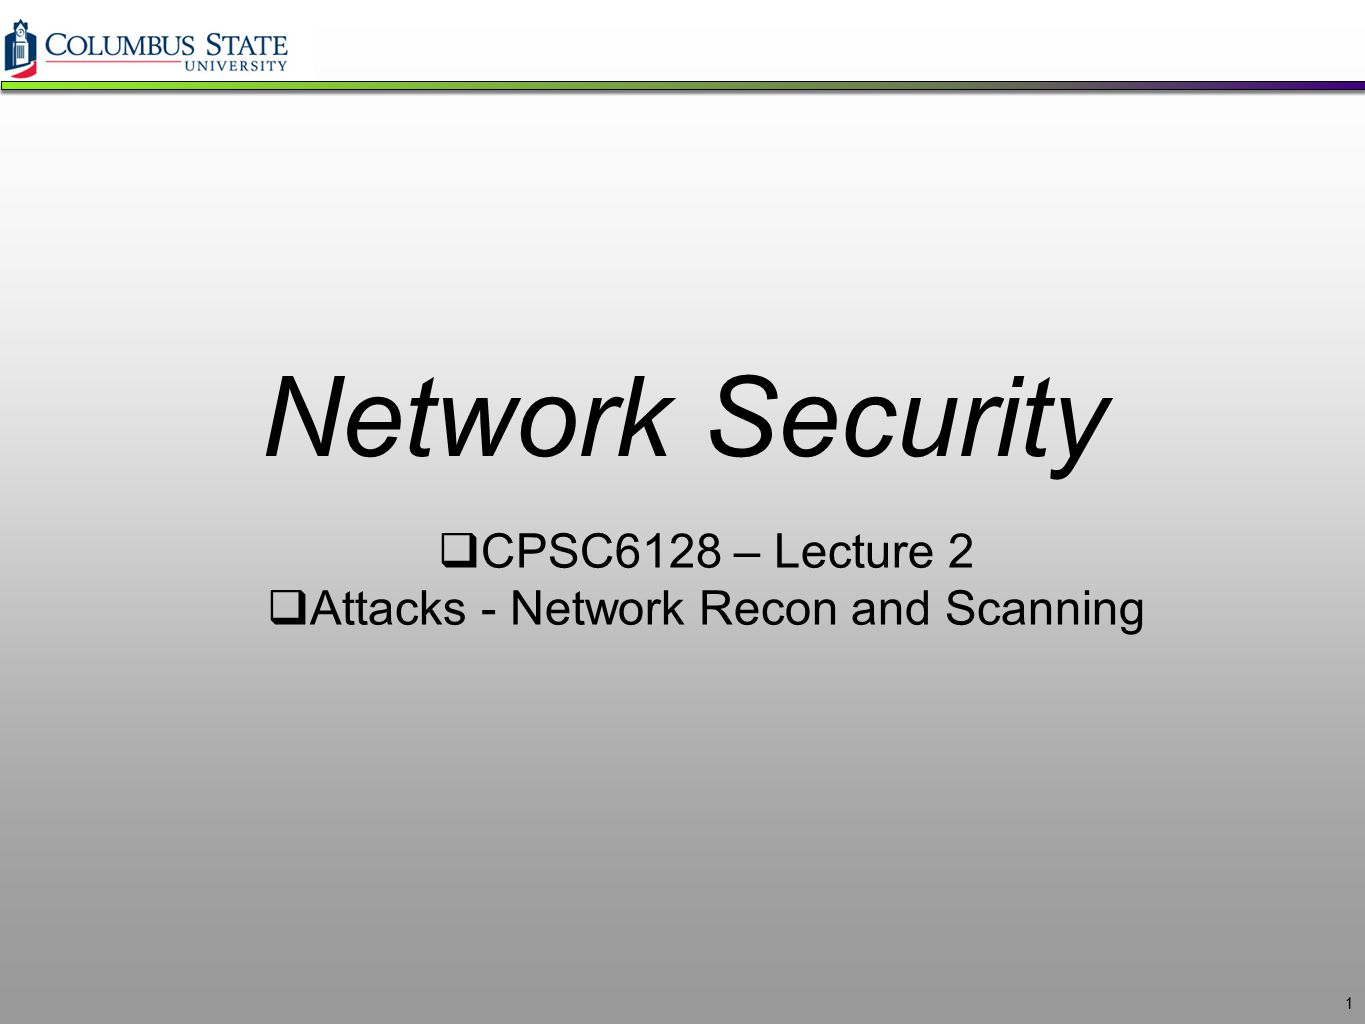 Attacks - Network Recon and Scanning